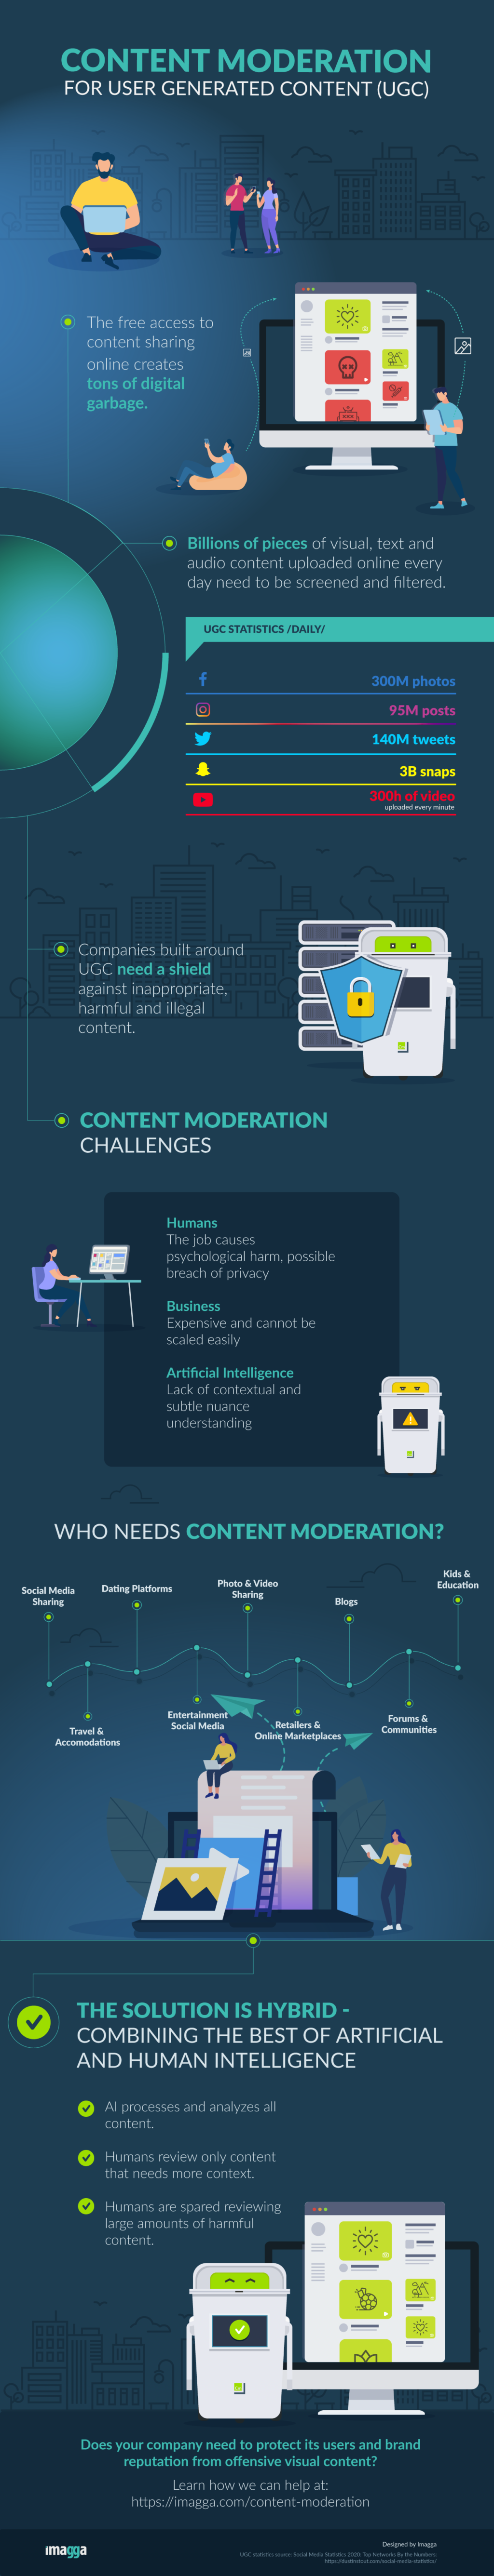 Content Moderation for UGC Infographic Imagga